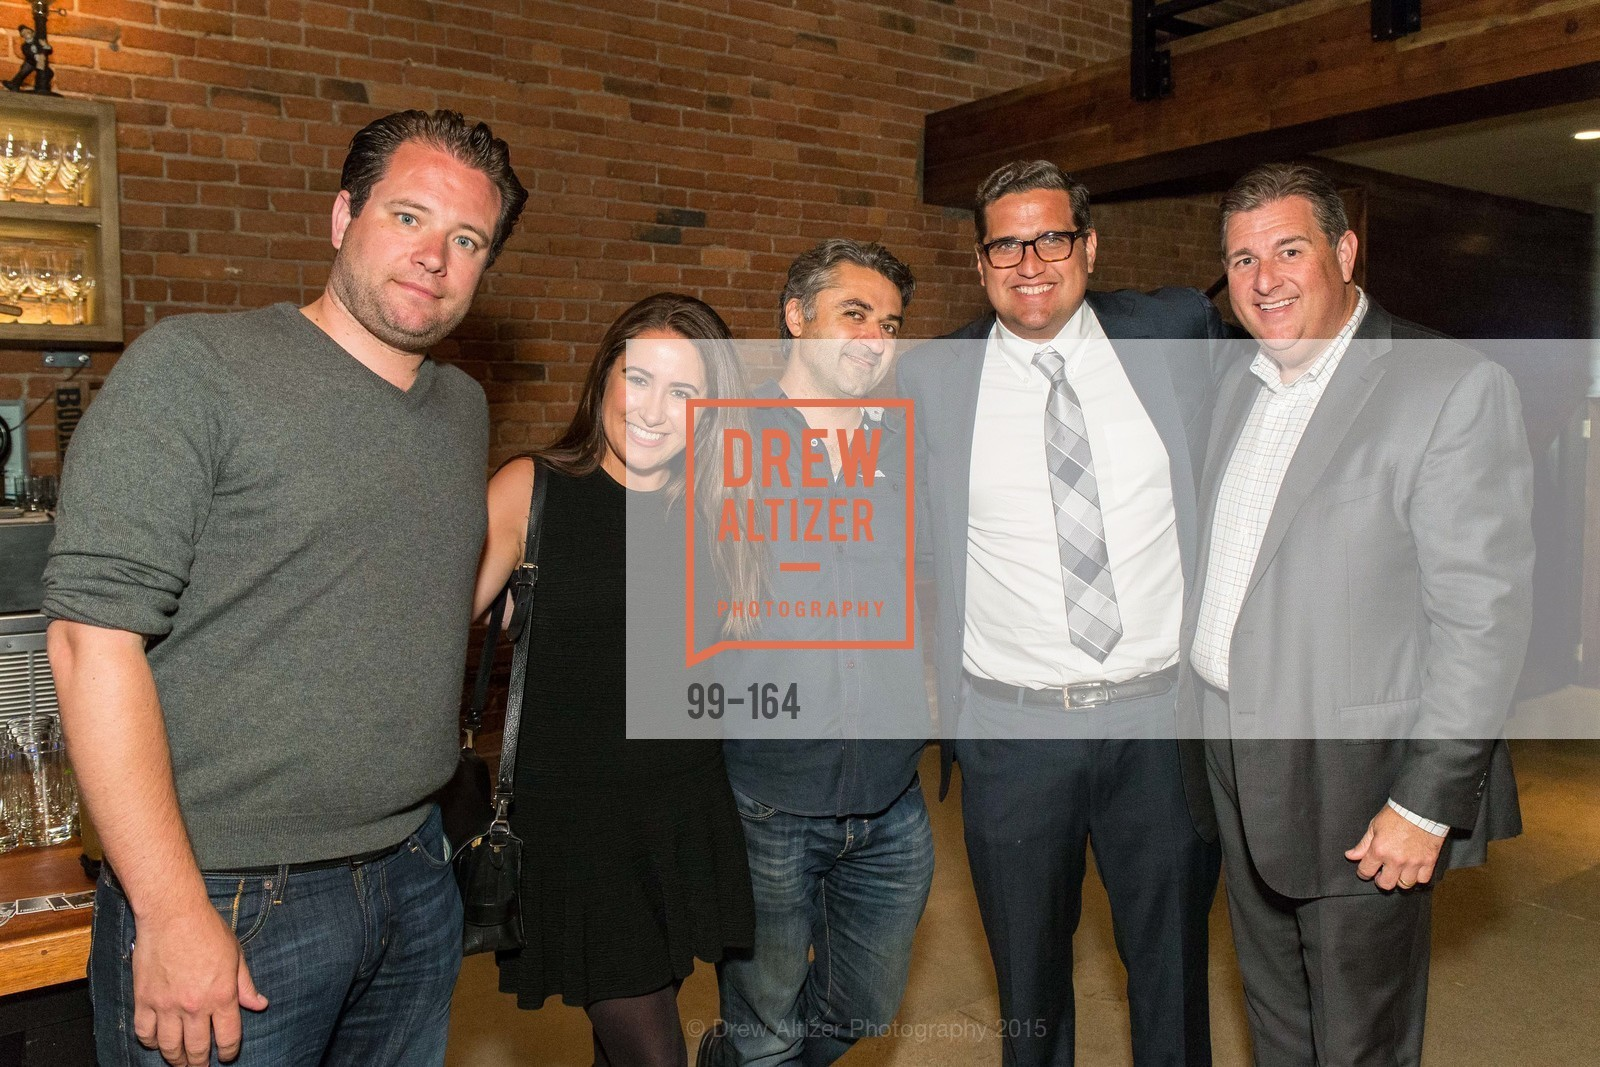 Jeremy Schere, Morgan Moore, Hooman Khalili, Peter Stern, Steven Revetria, Forgery Bar Opening Celebration, Forgery Bar. 152 Mission St, June 14th, 2015,Drew Altizer, Drew Altizer Photography, full-service agency, private events, San Francisco photographer, photographer california